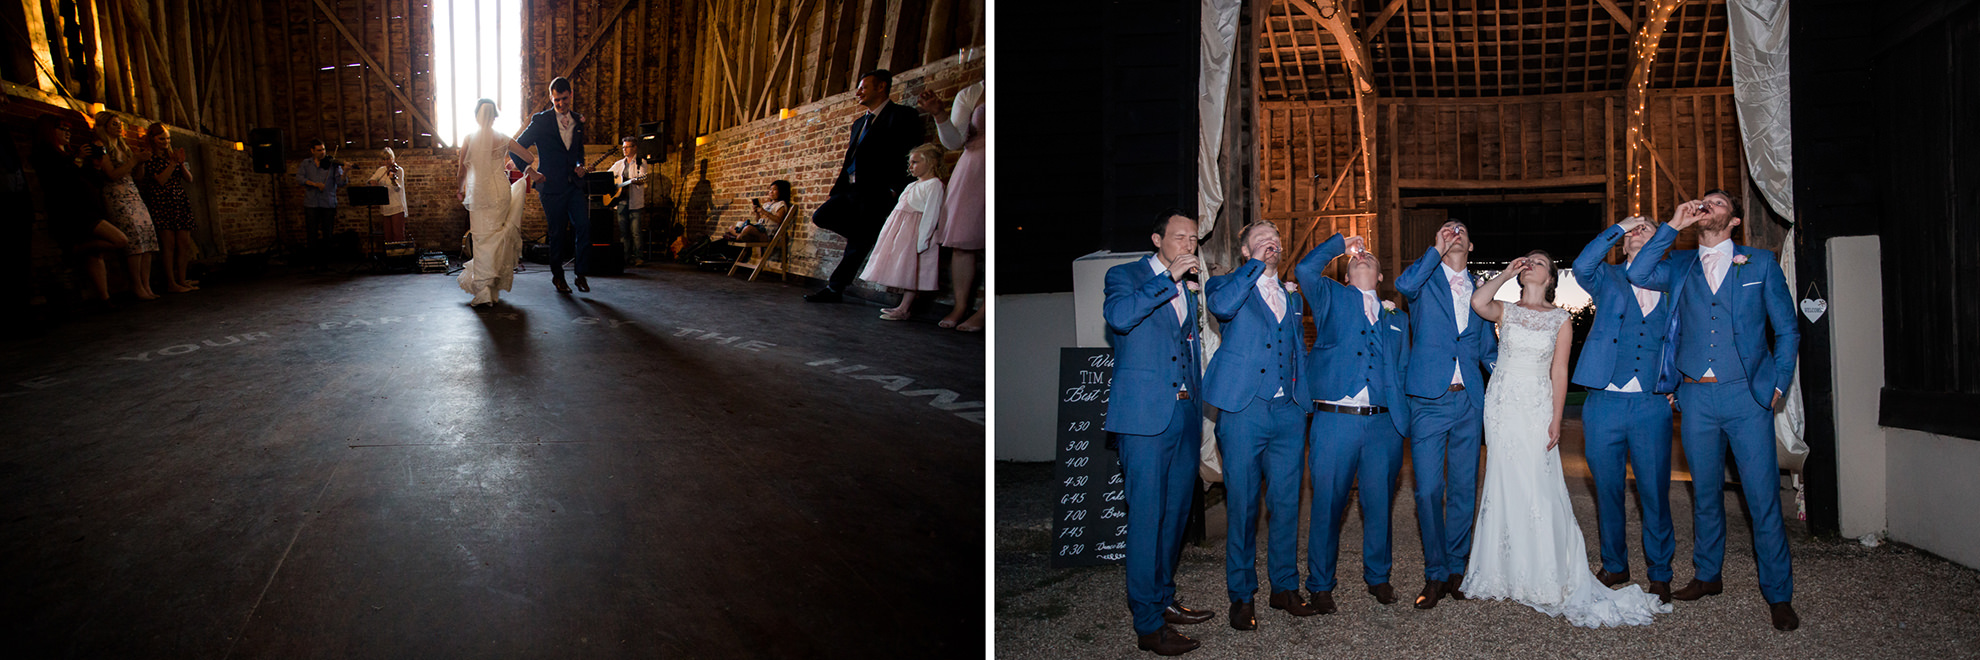 dyptich of best wedding barns in hamp[shire michelmersh barn with wedding guests outside and first dance of couple